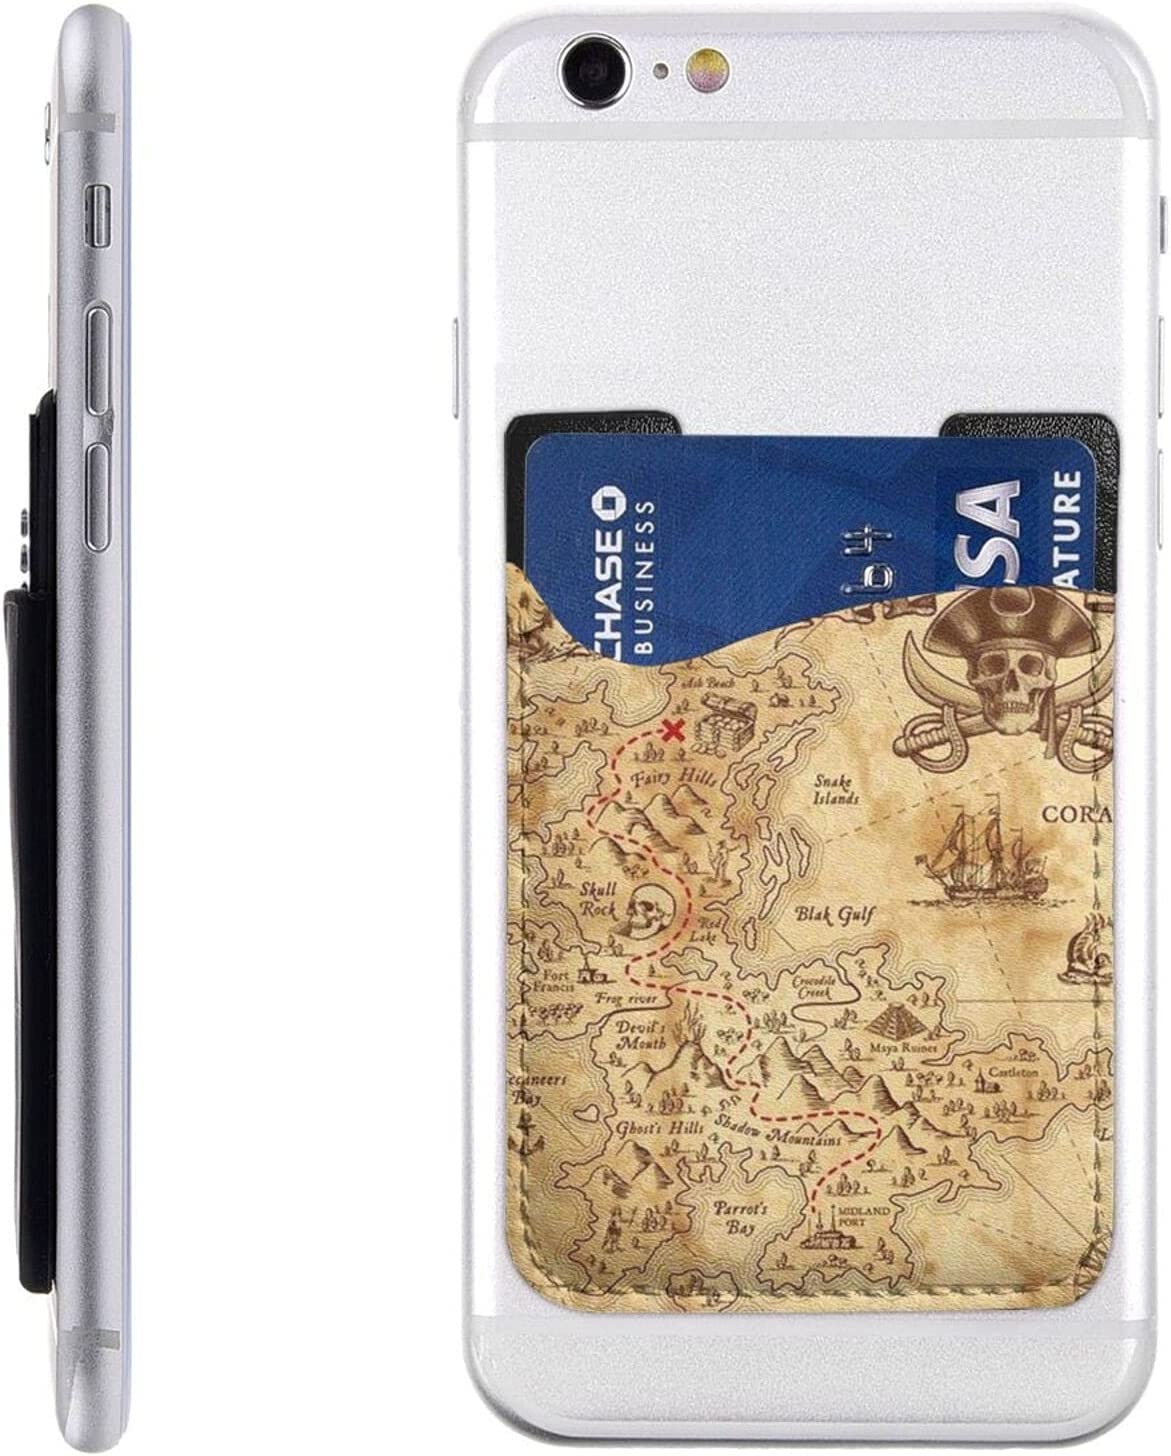 Treasure Map Popular brand in the 5 popular world Vintage Phone Card Cell On Stick Holder